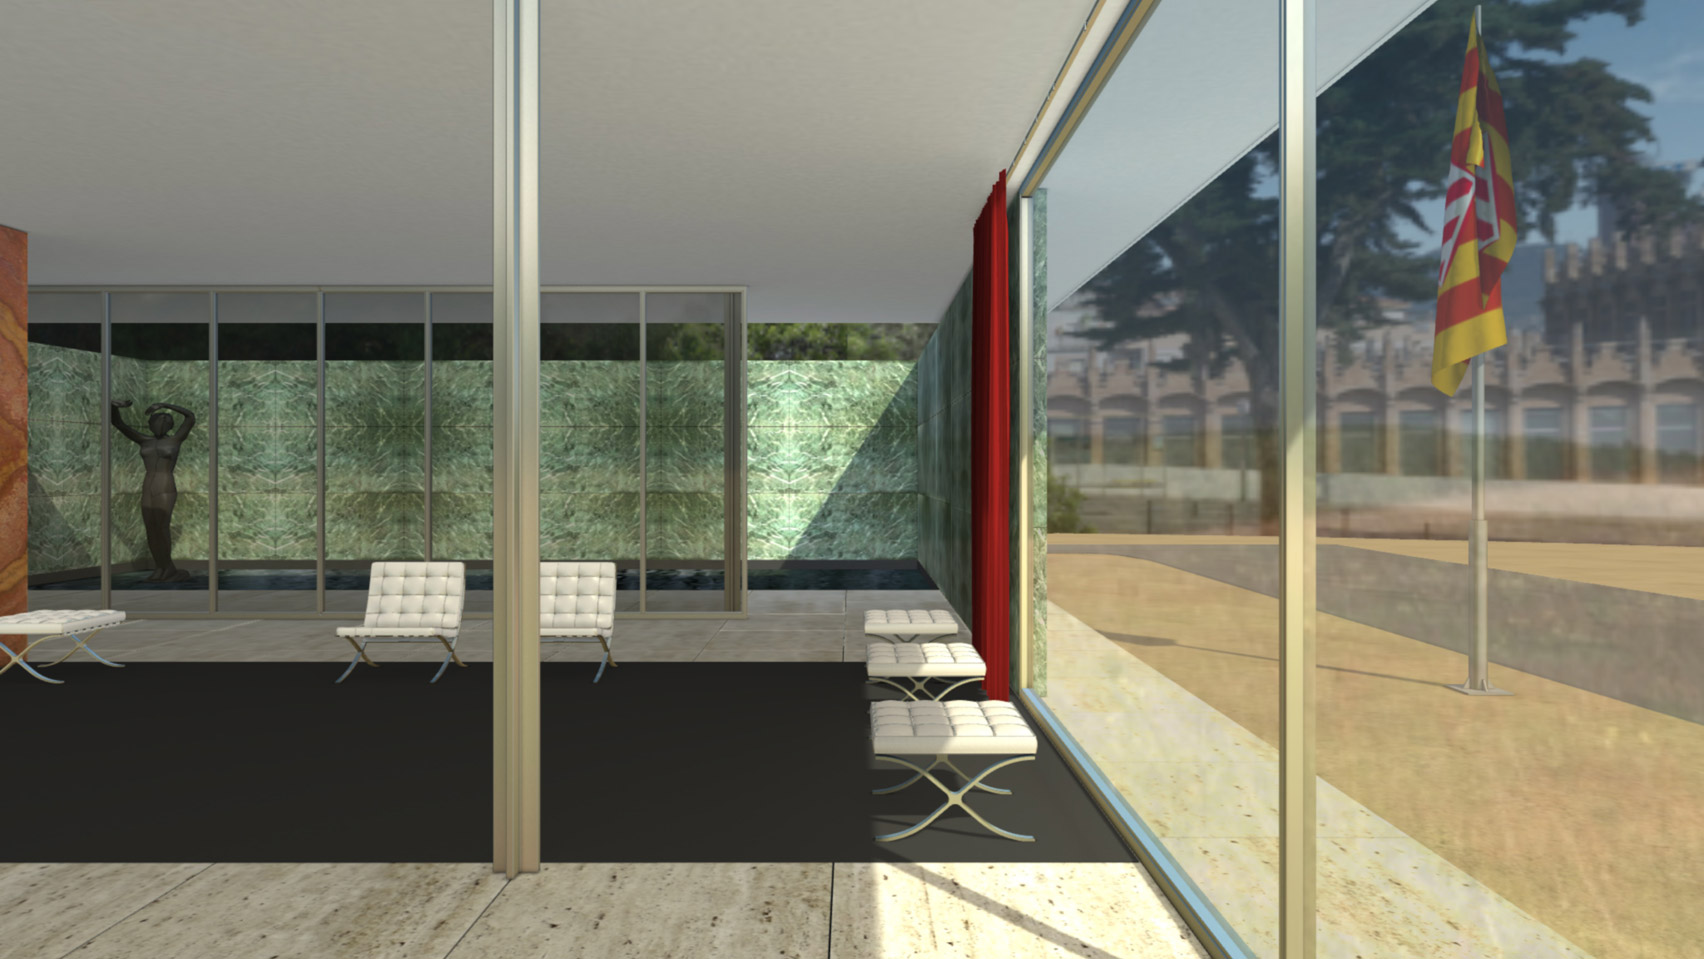 Chicago Mies Van Der Rohe Tour cl3ver launches virtual tour of mies van der rohe's